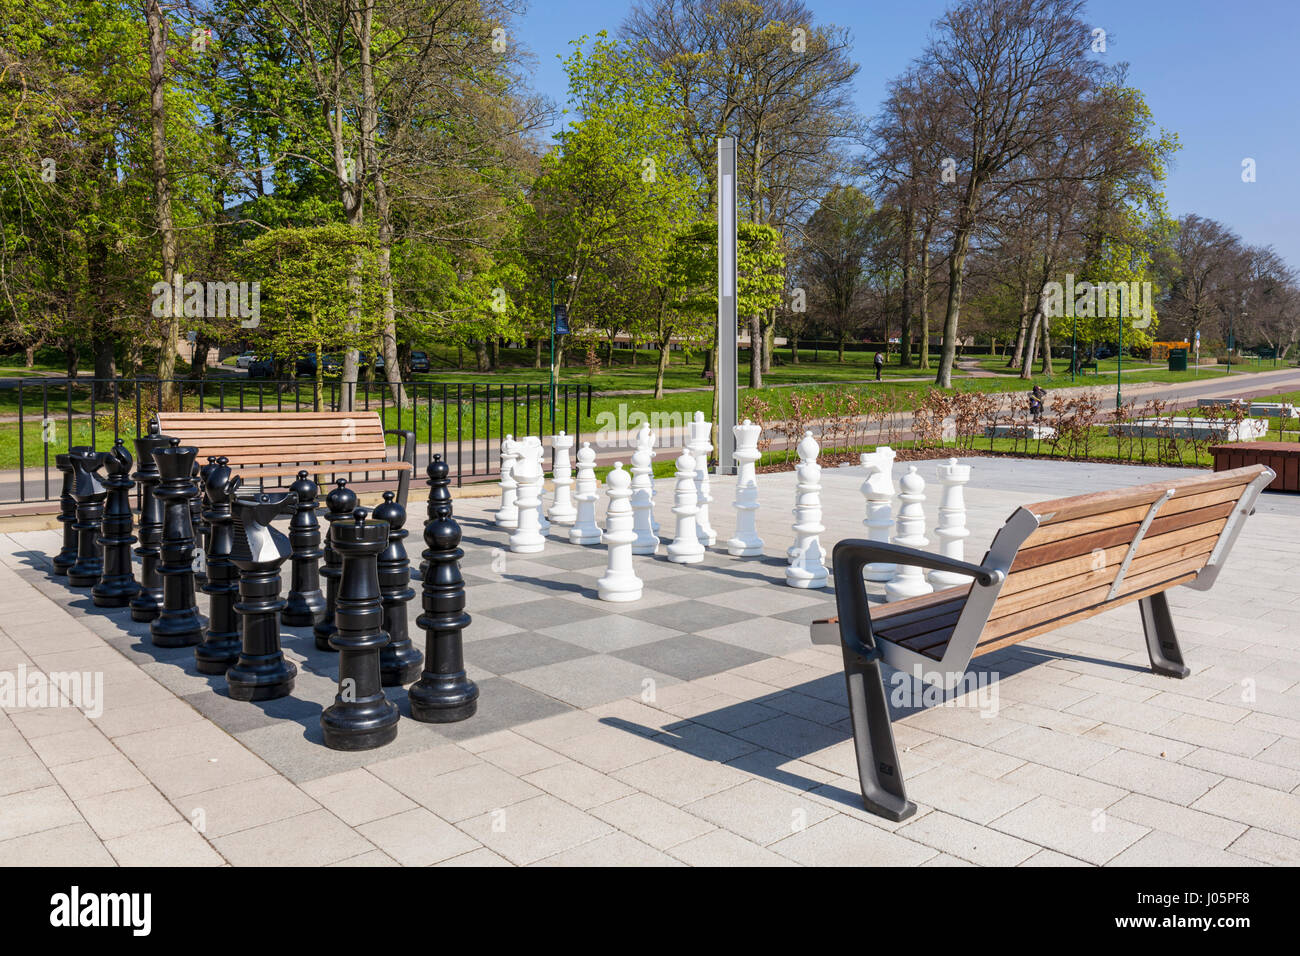 nottingham university Outdoors chess set chess board with pieces of chessmen university campus nottingham university - Stock Image